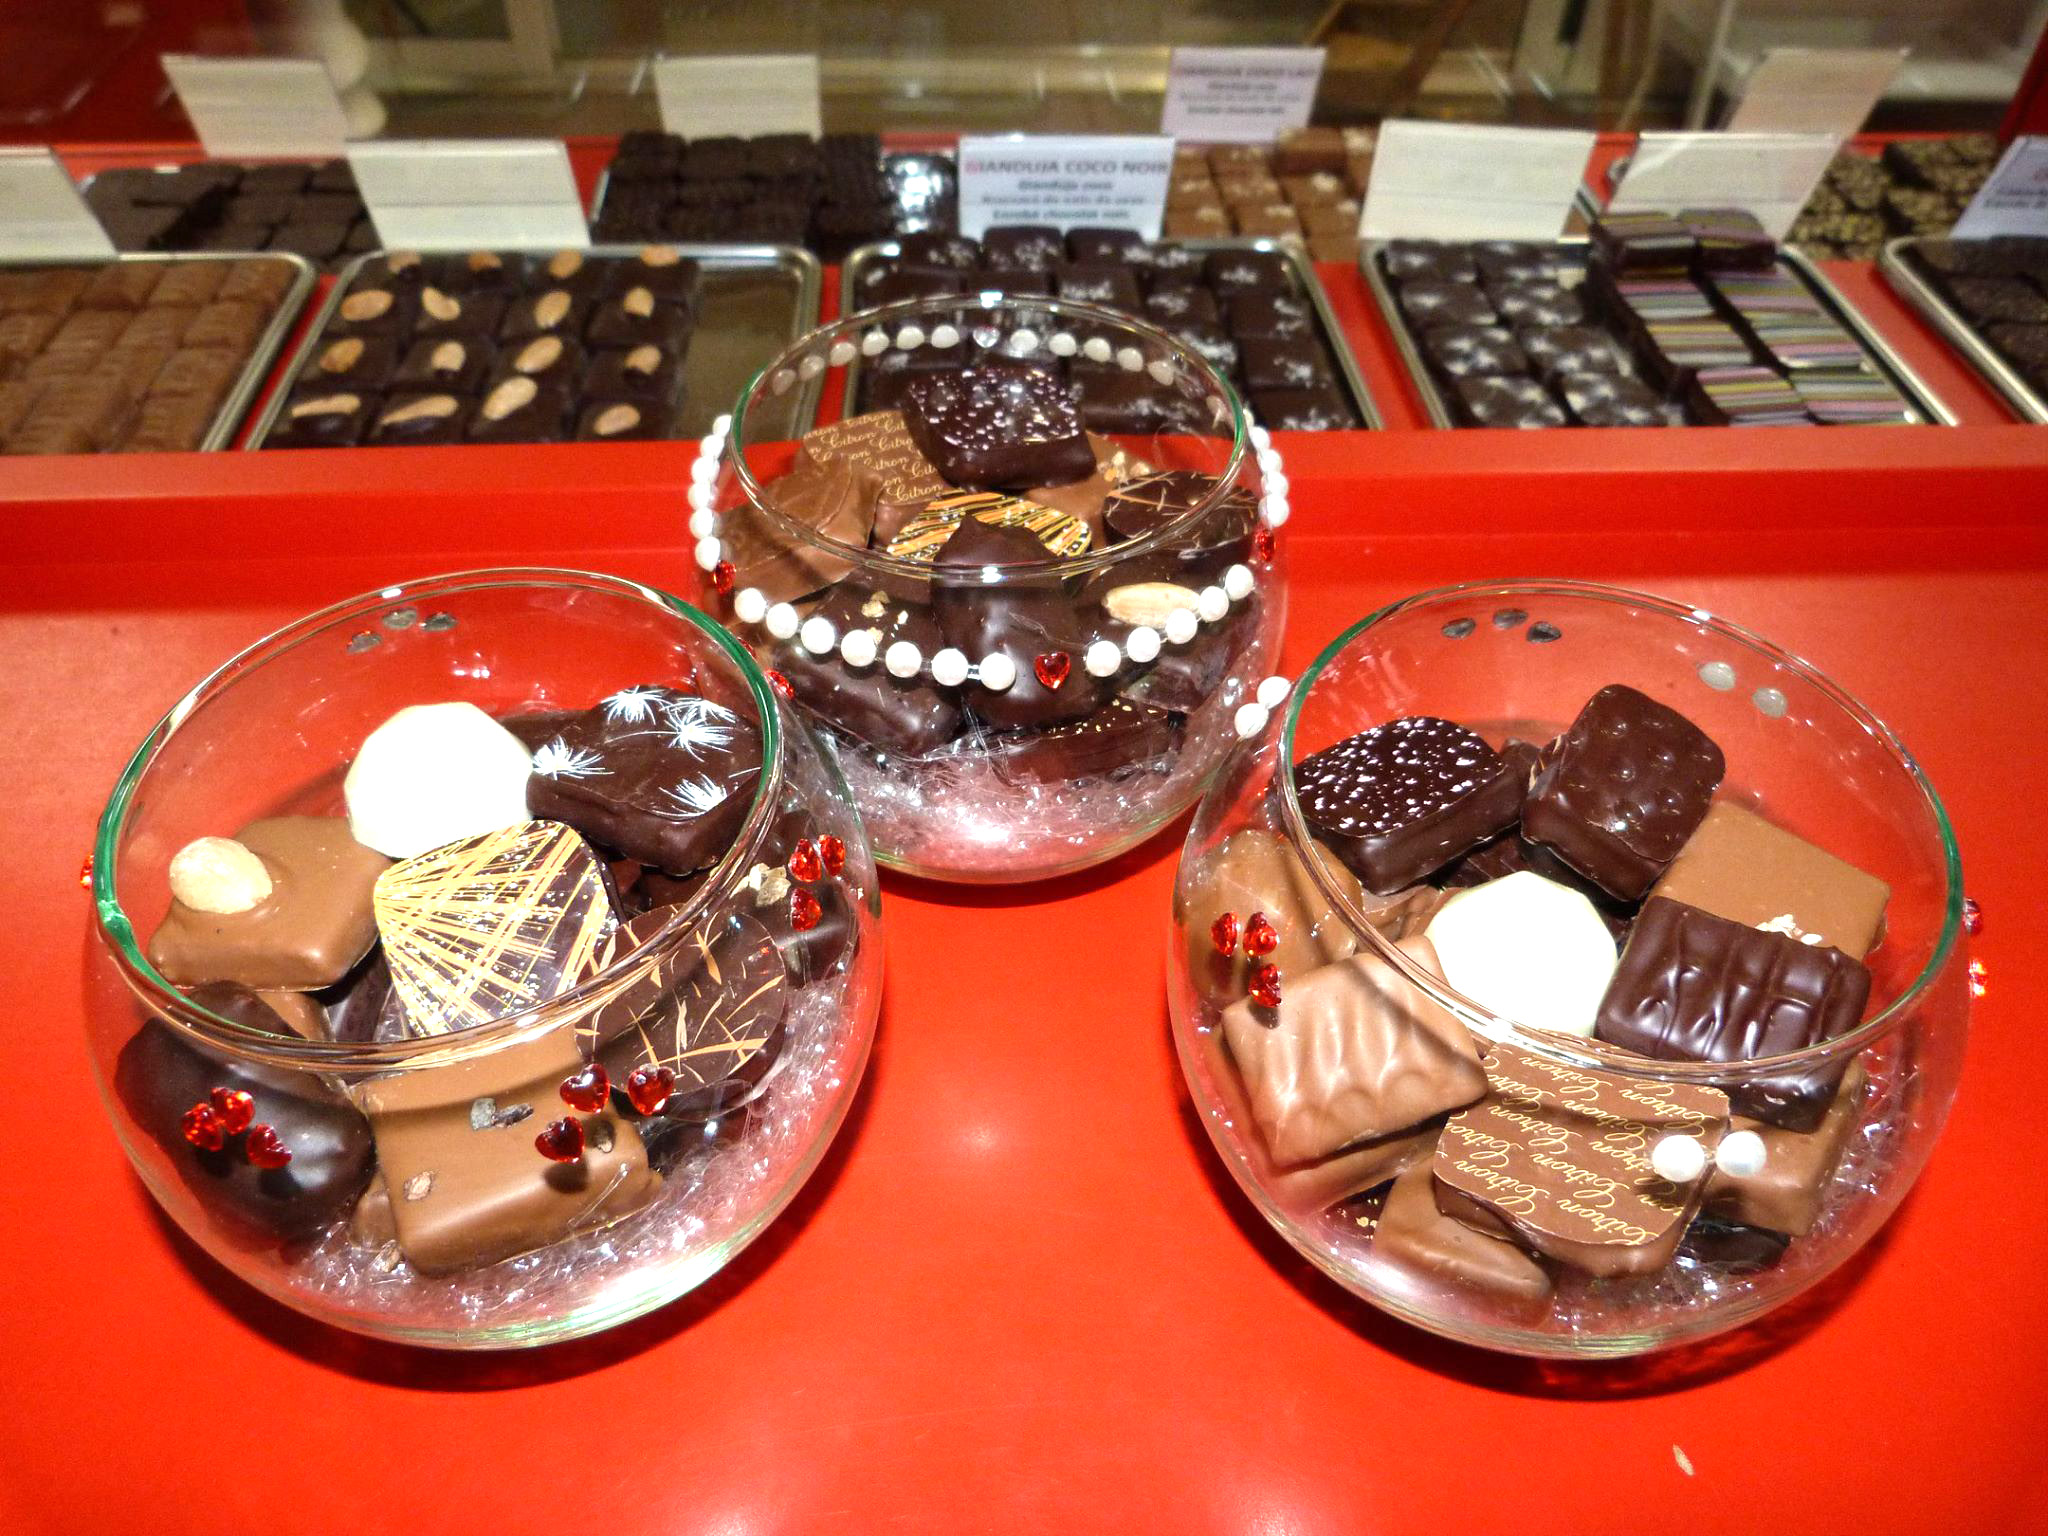 assortiment de chocolats la ciotat